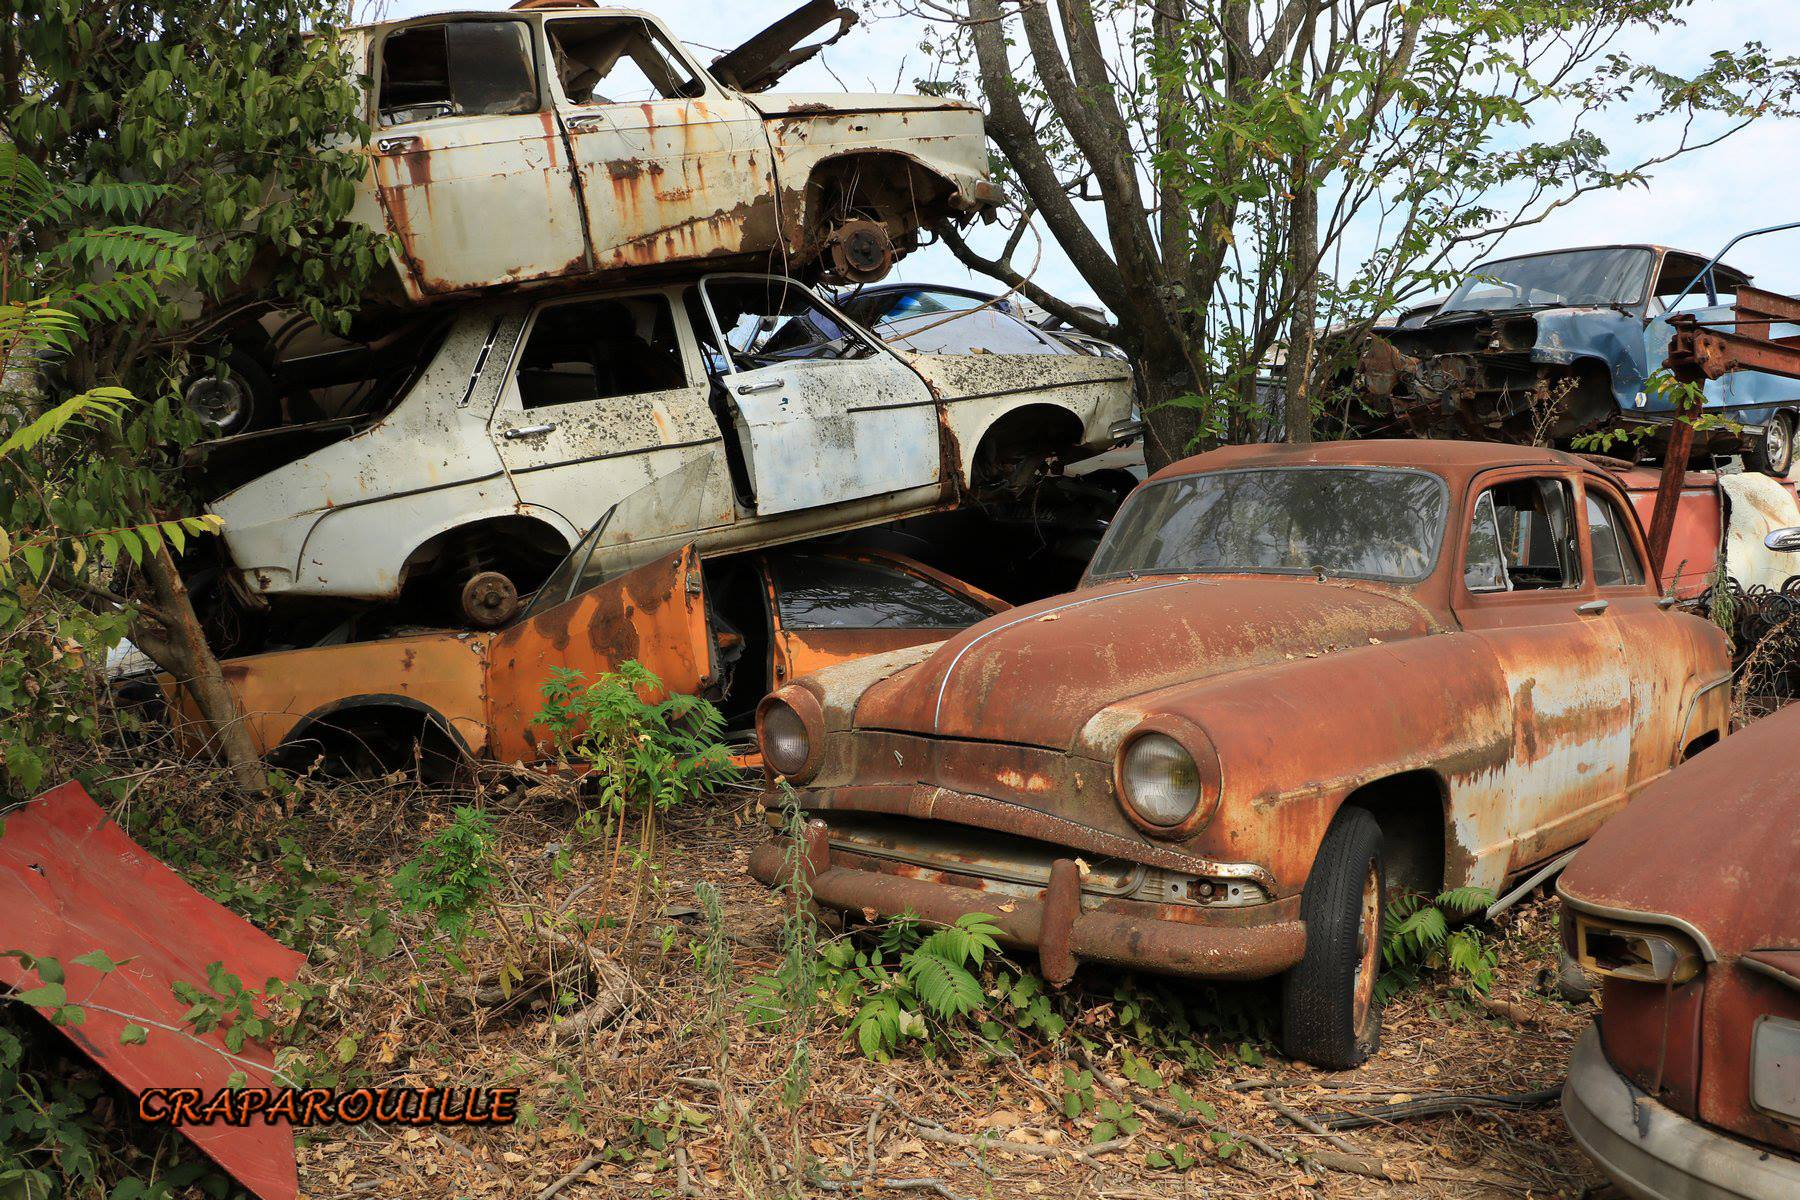 Photography-Diamonds-in-Rust-Craparouille-90